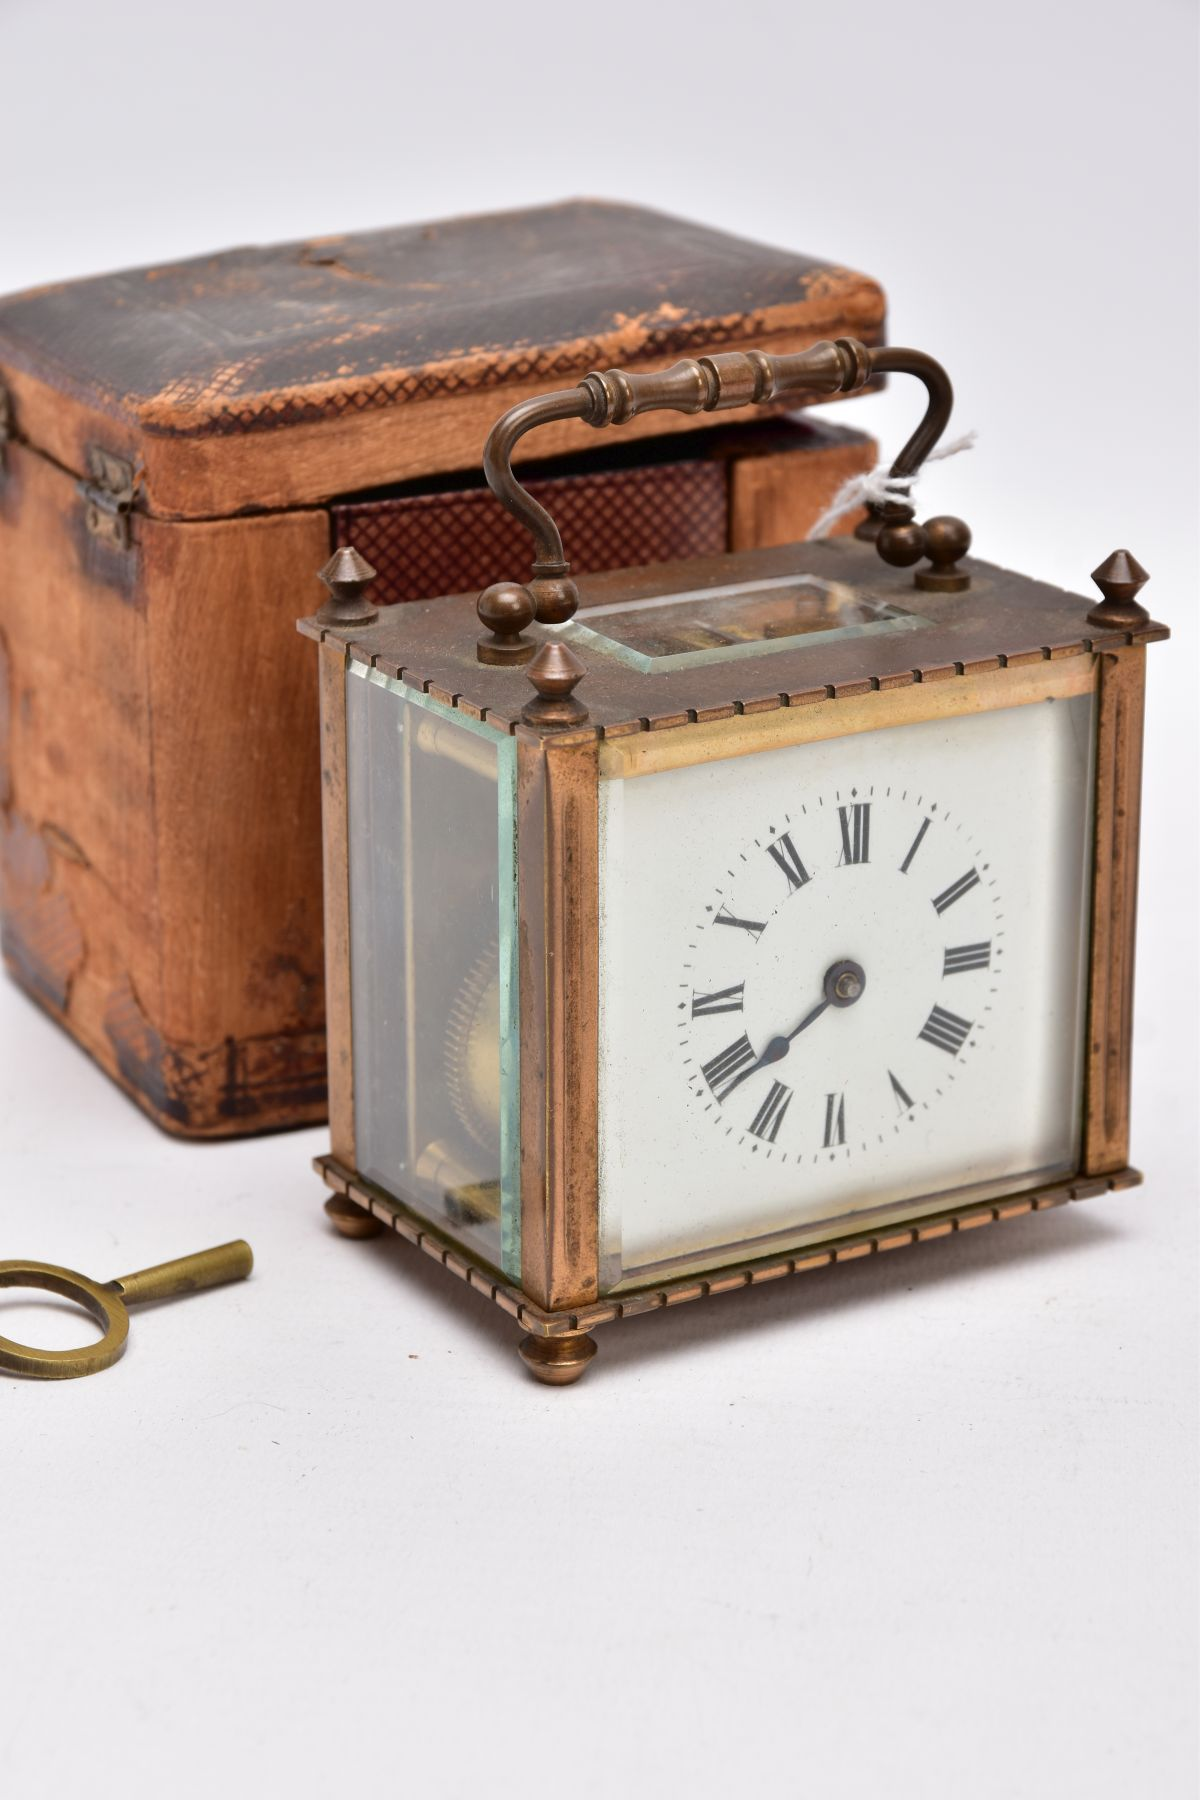 A SMALL LEATHER CASED BRASS TRAVEL CARRIAGE CLOCK, glass panels, white dial with roman numerals, - Image 3 of 8